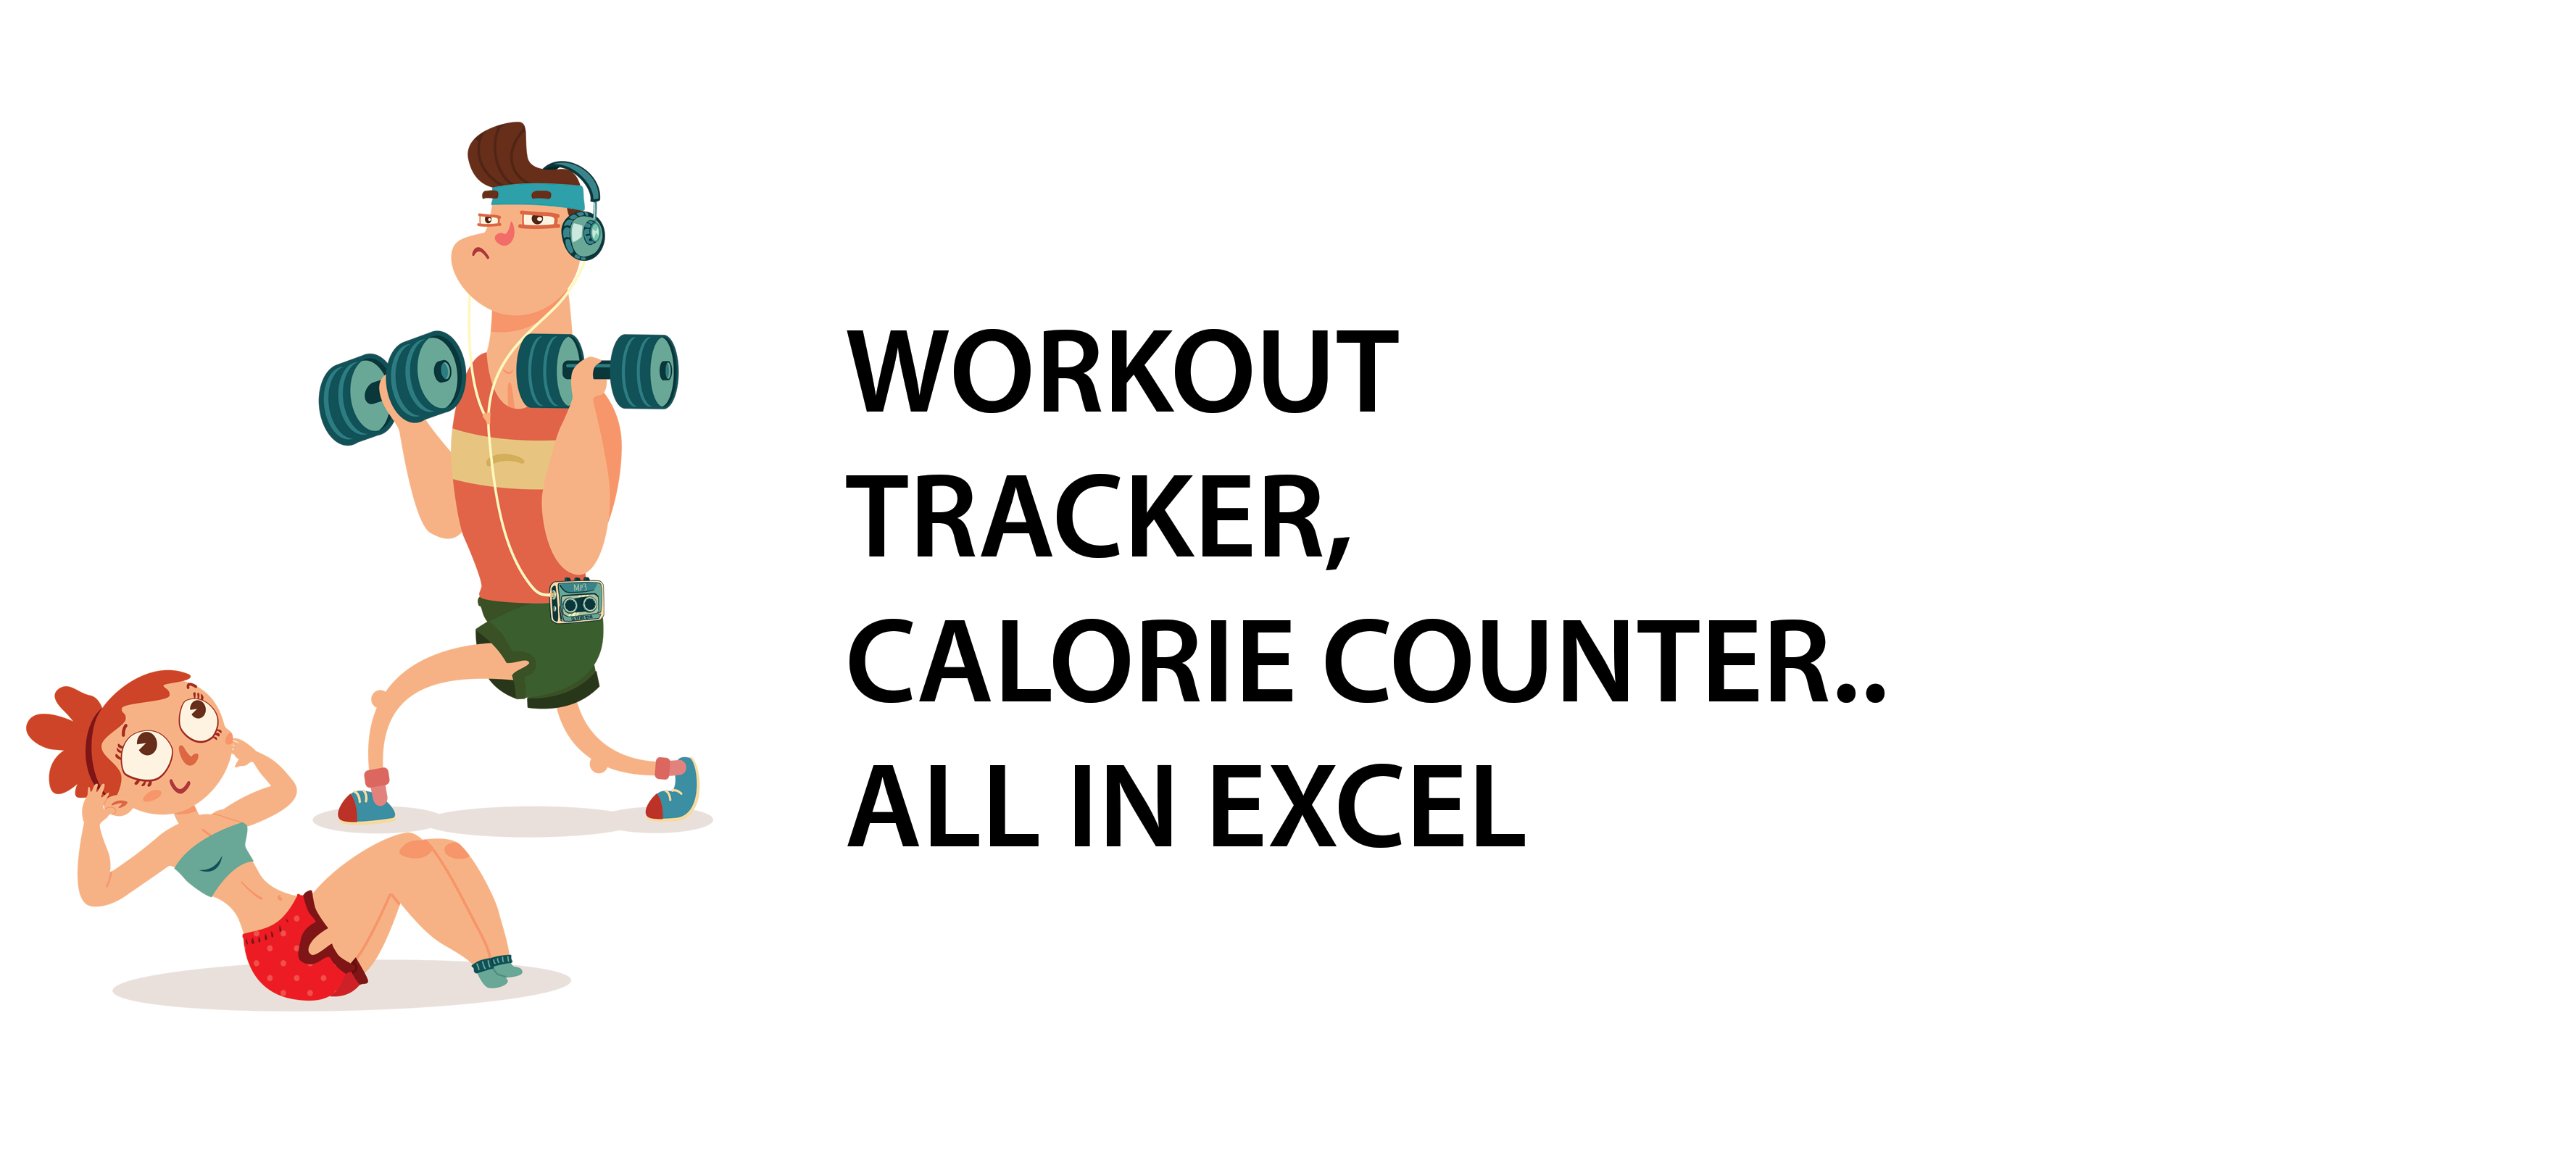 Calorie Intake Spreadsheet Inside Workout Tracker Calorie